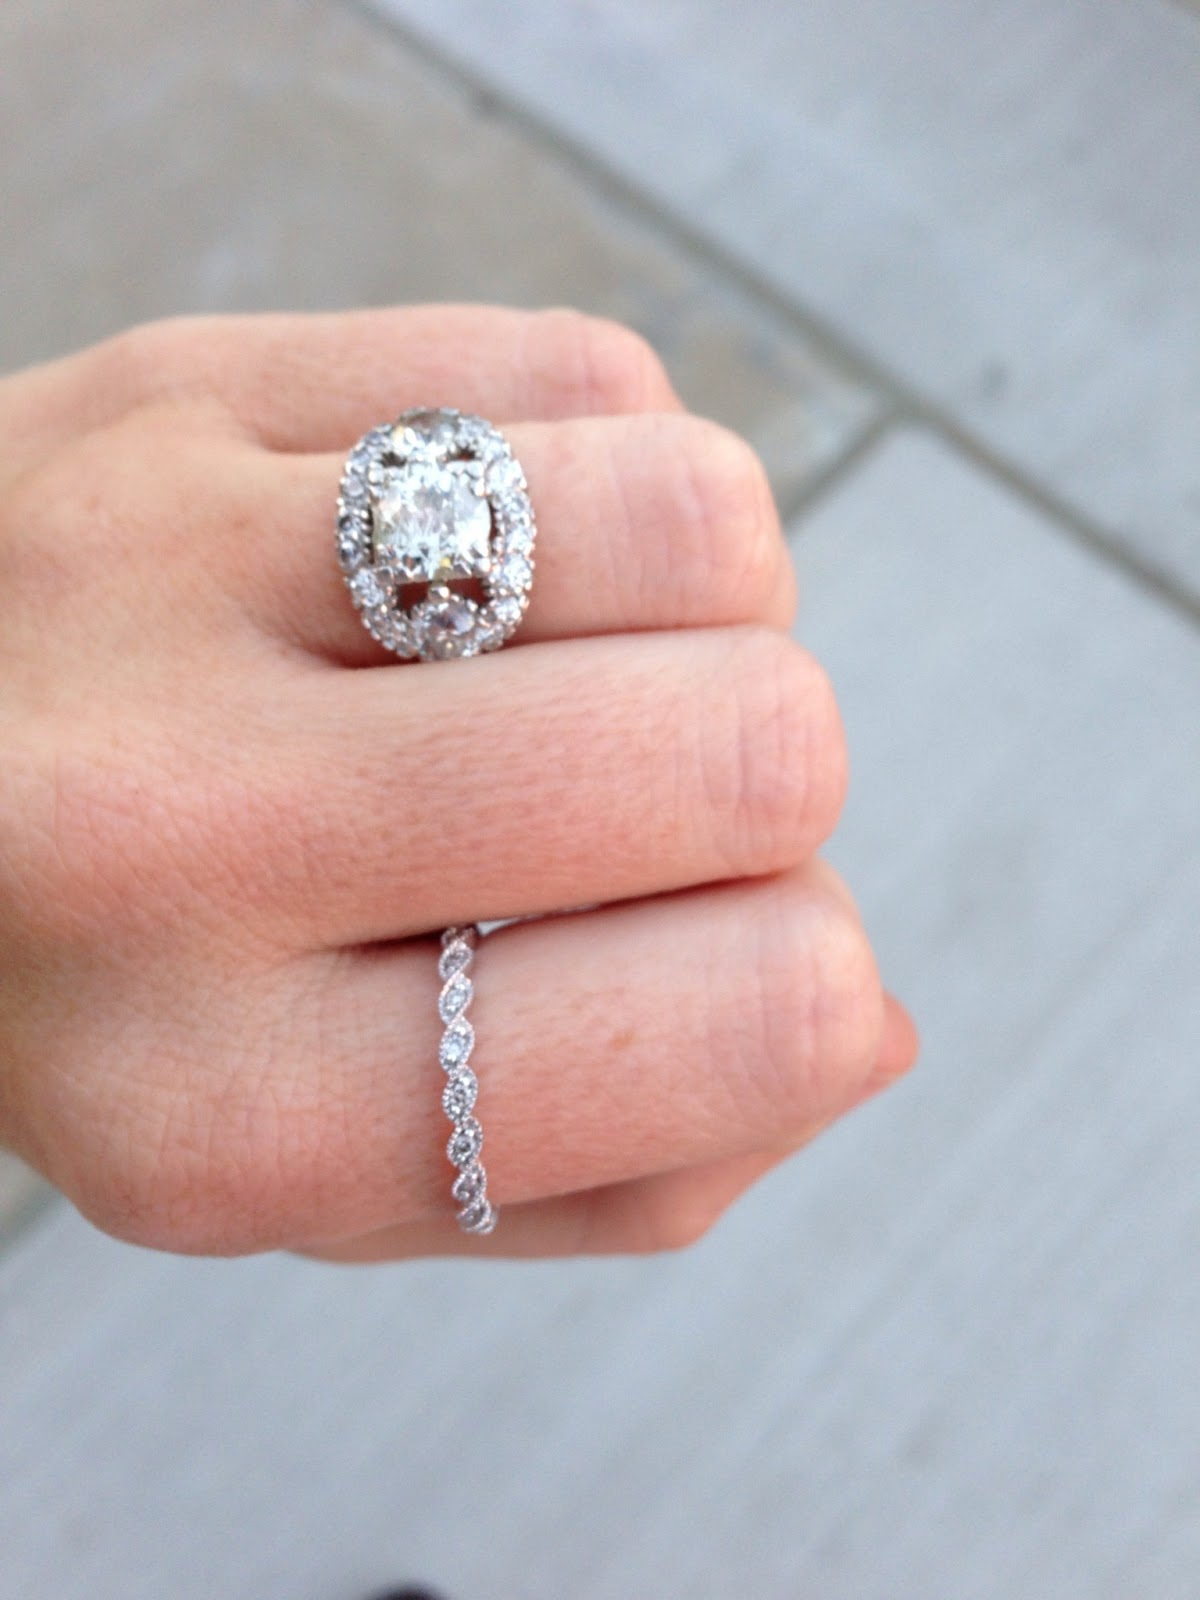 The Story Of My Engagement Ring - Helene in Between